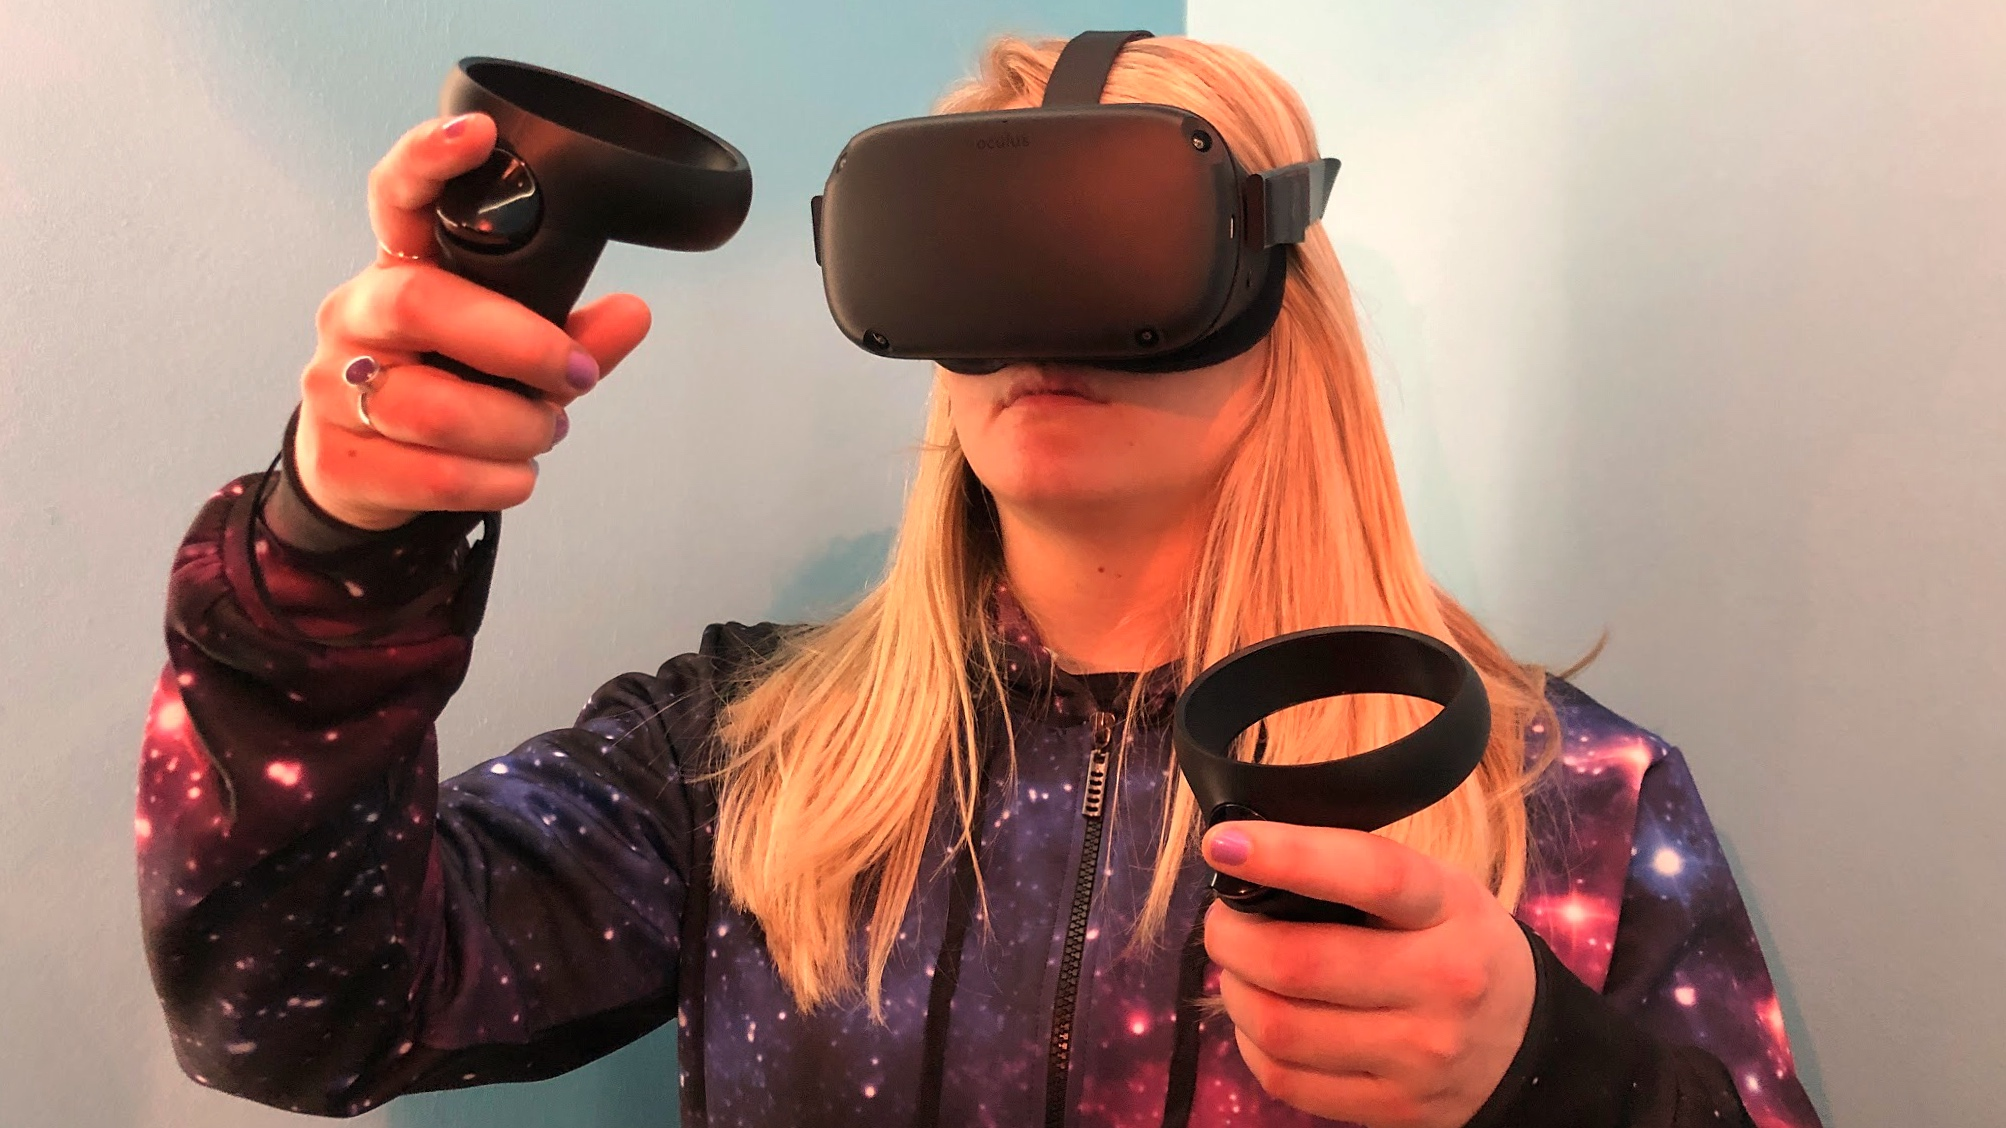 Expo 2020 Dubai and 5G to give a shot in arm to VR industry in UAE next year